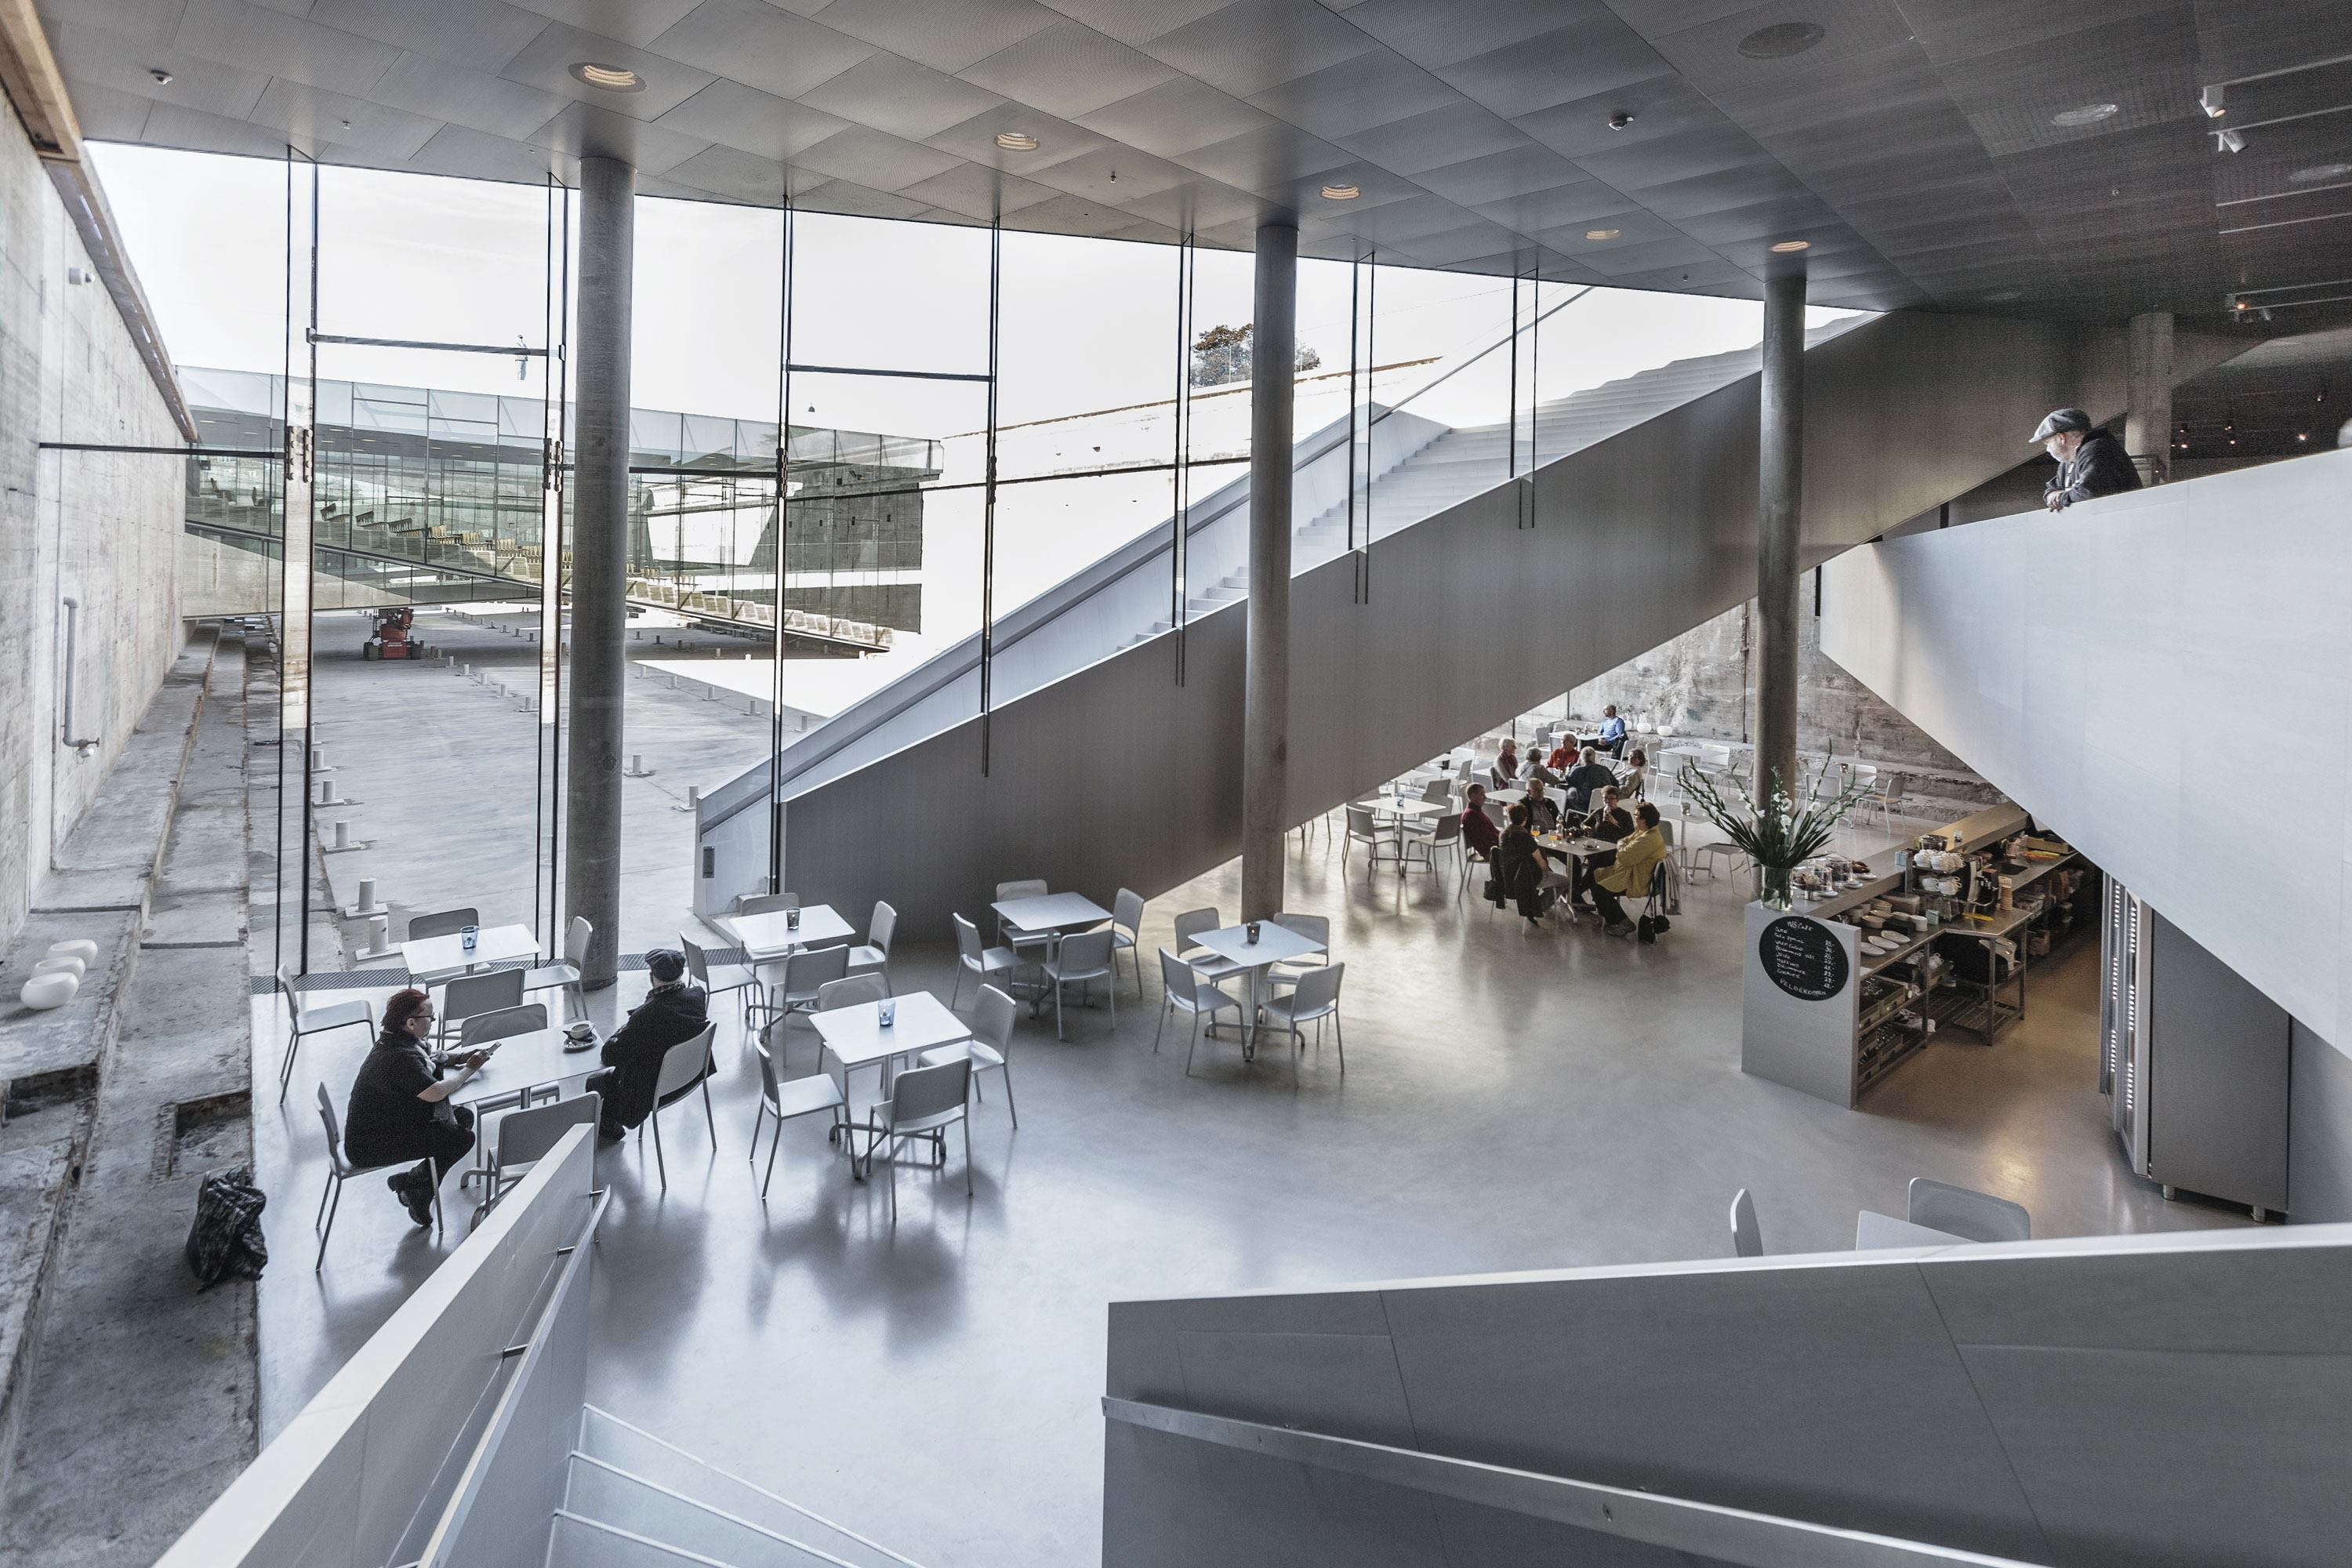 Danish maritime museum architect magazine cultural for Architecture agency